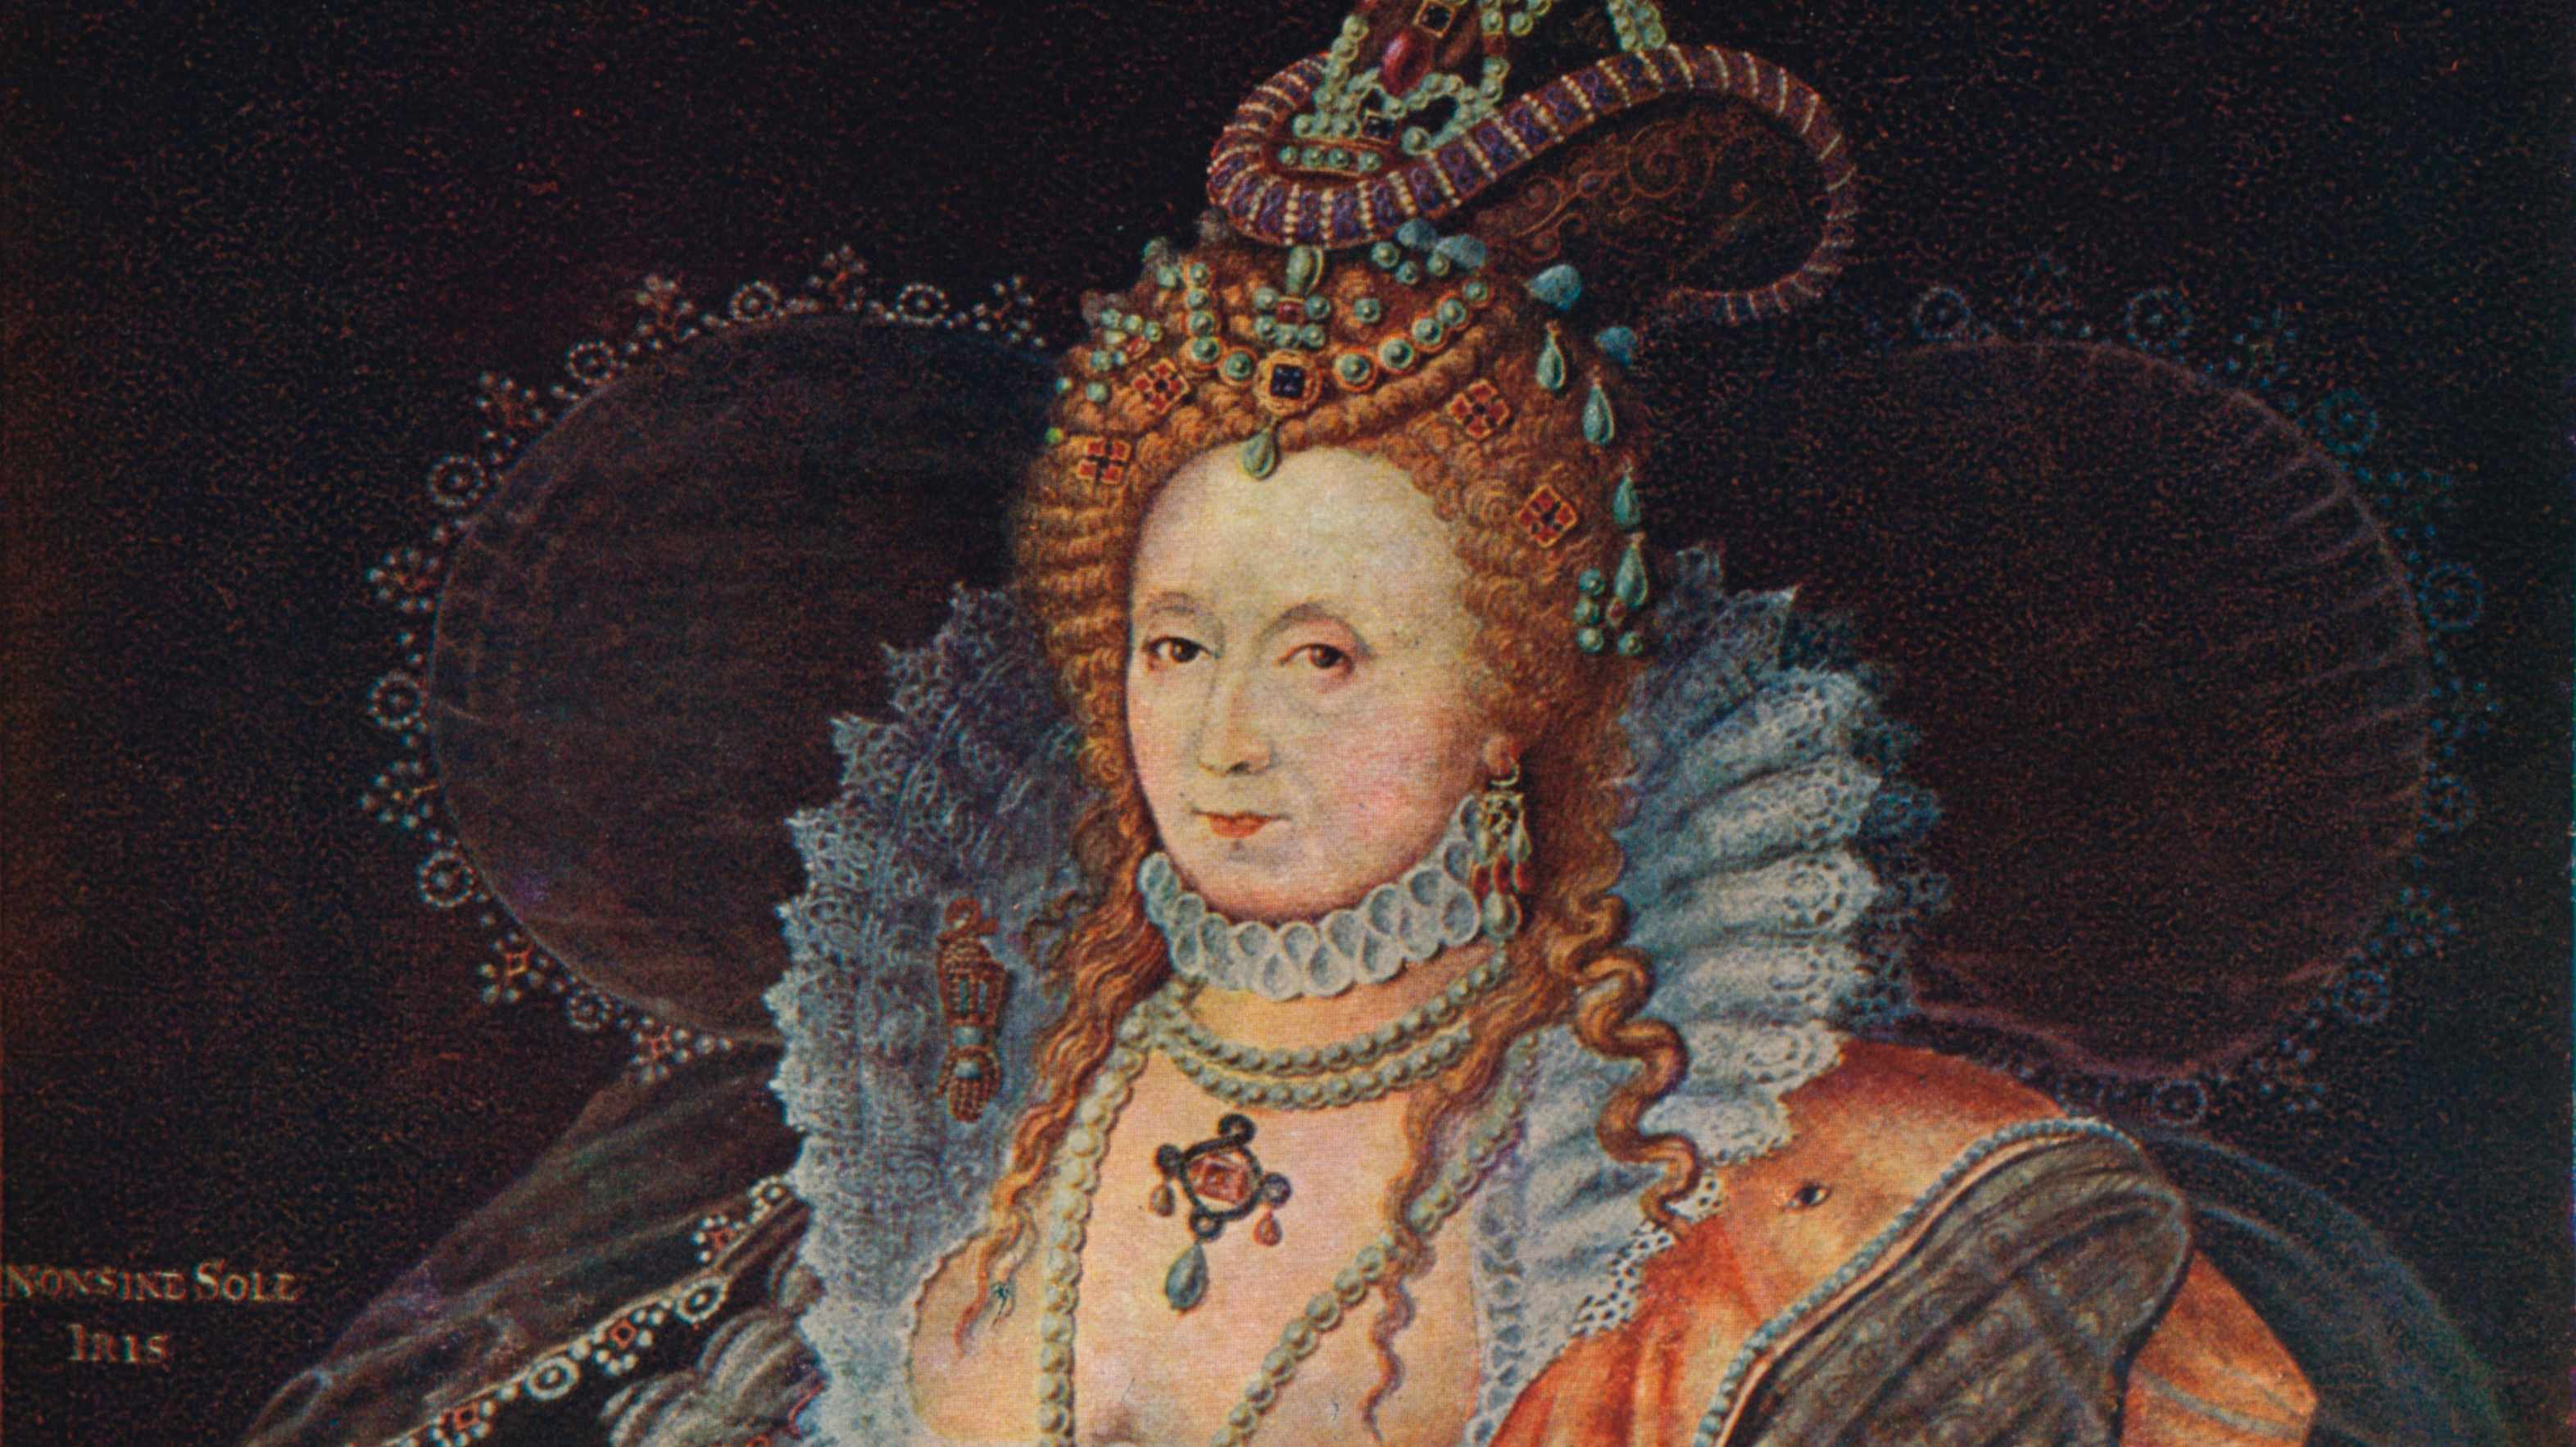 A 19th-century portrait of Queen Elizabeth I. (Photo by Print Collector/Getty Images)